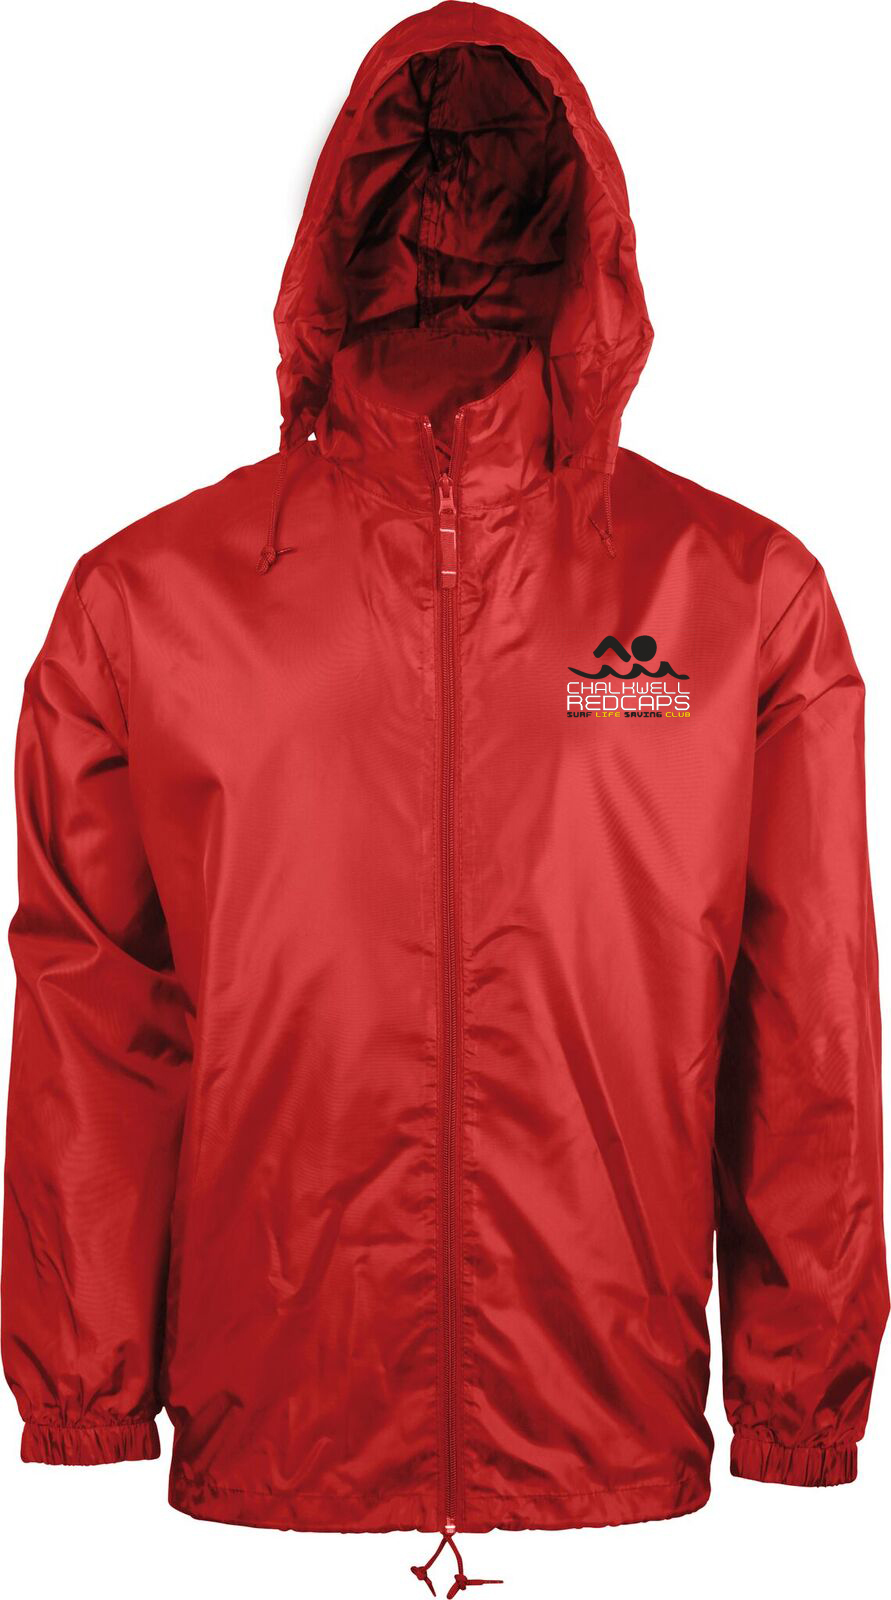 Redcaps Windbreaker Jacket